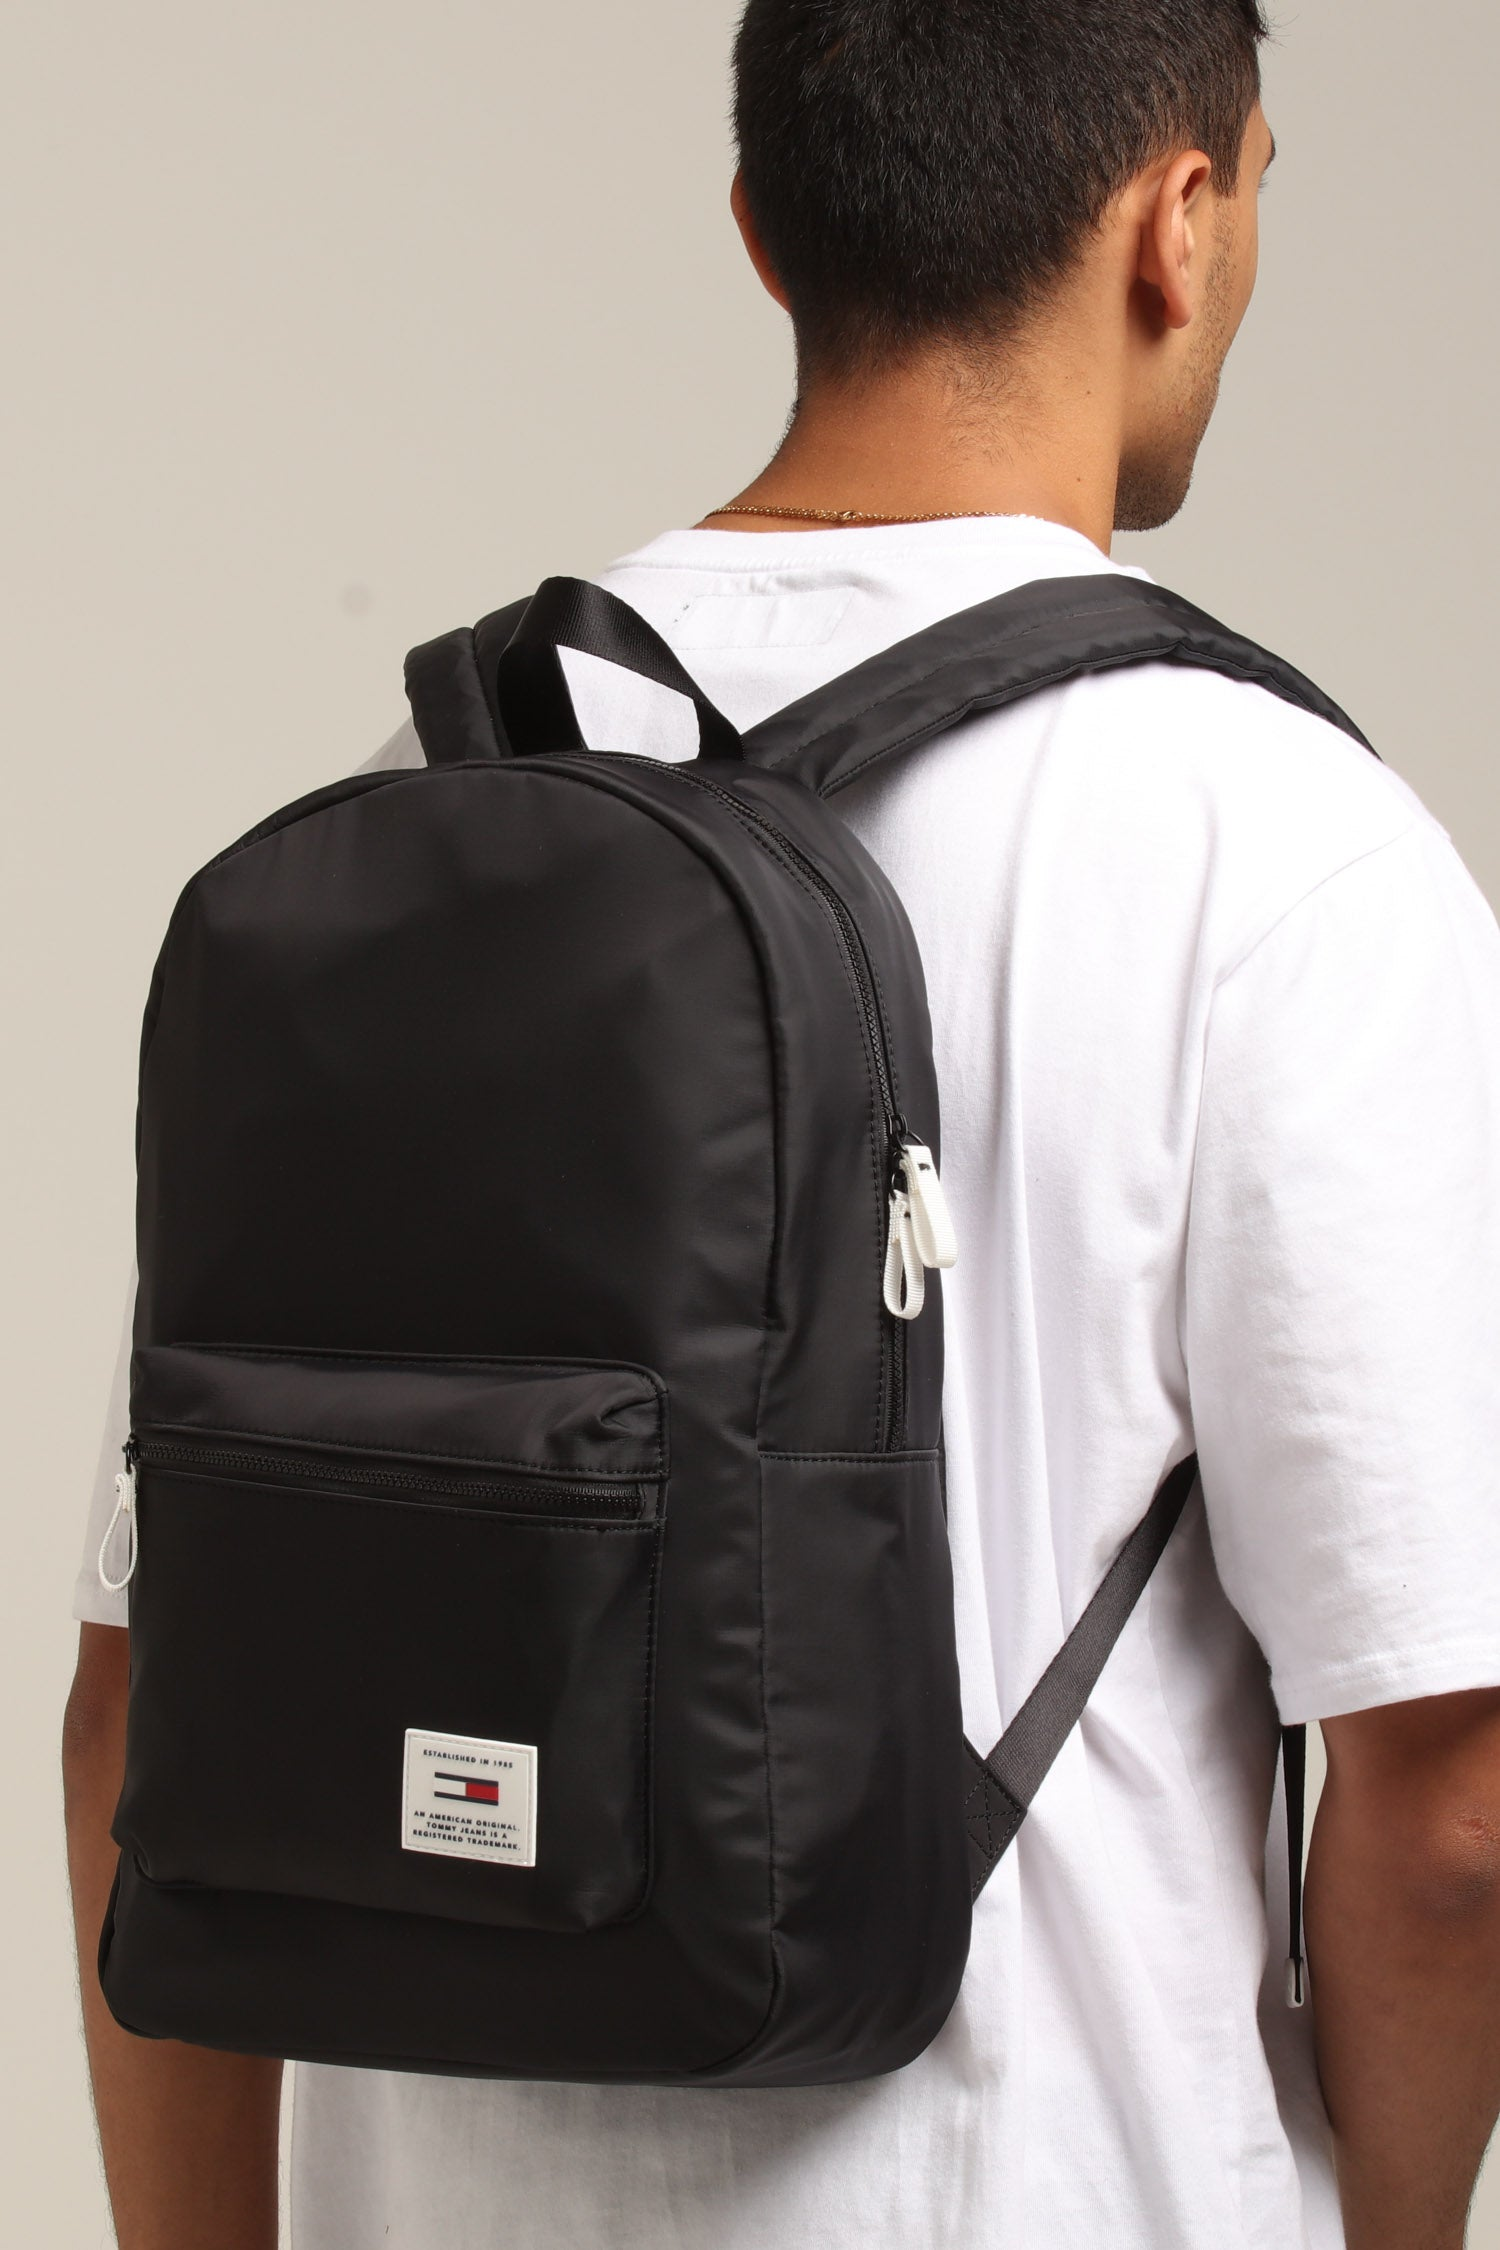 UNDEFEATED INC. Porter x adidas Campus, Boston Bag and